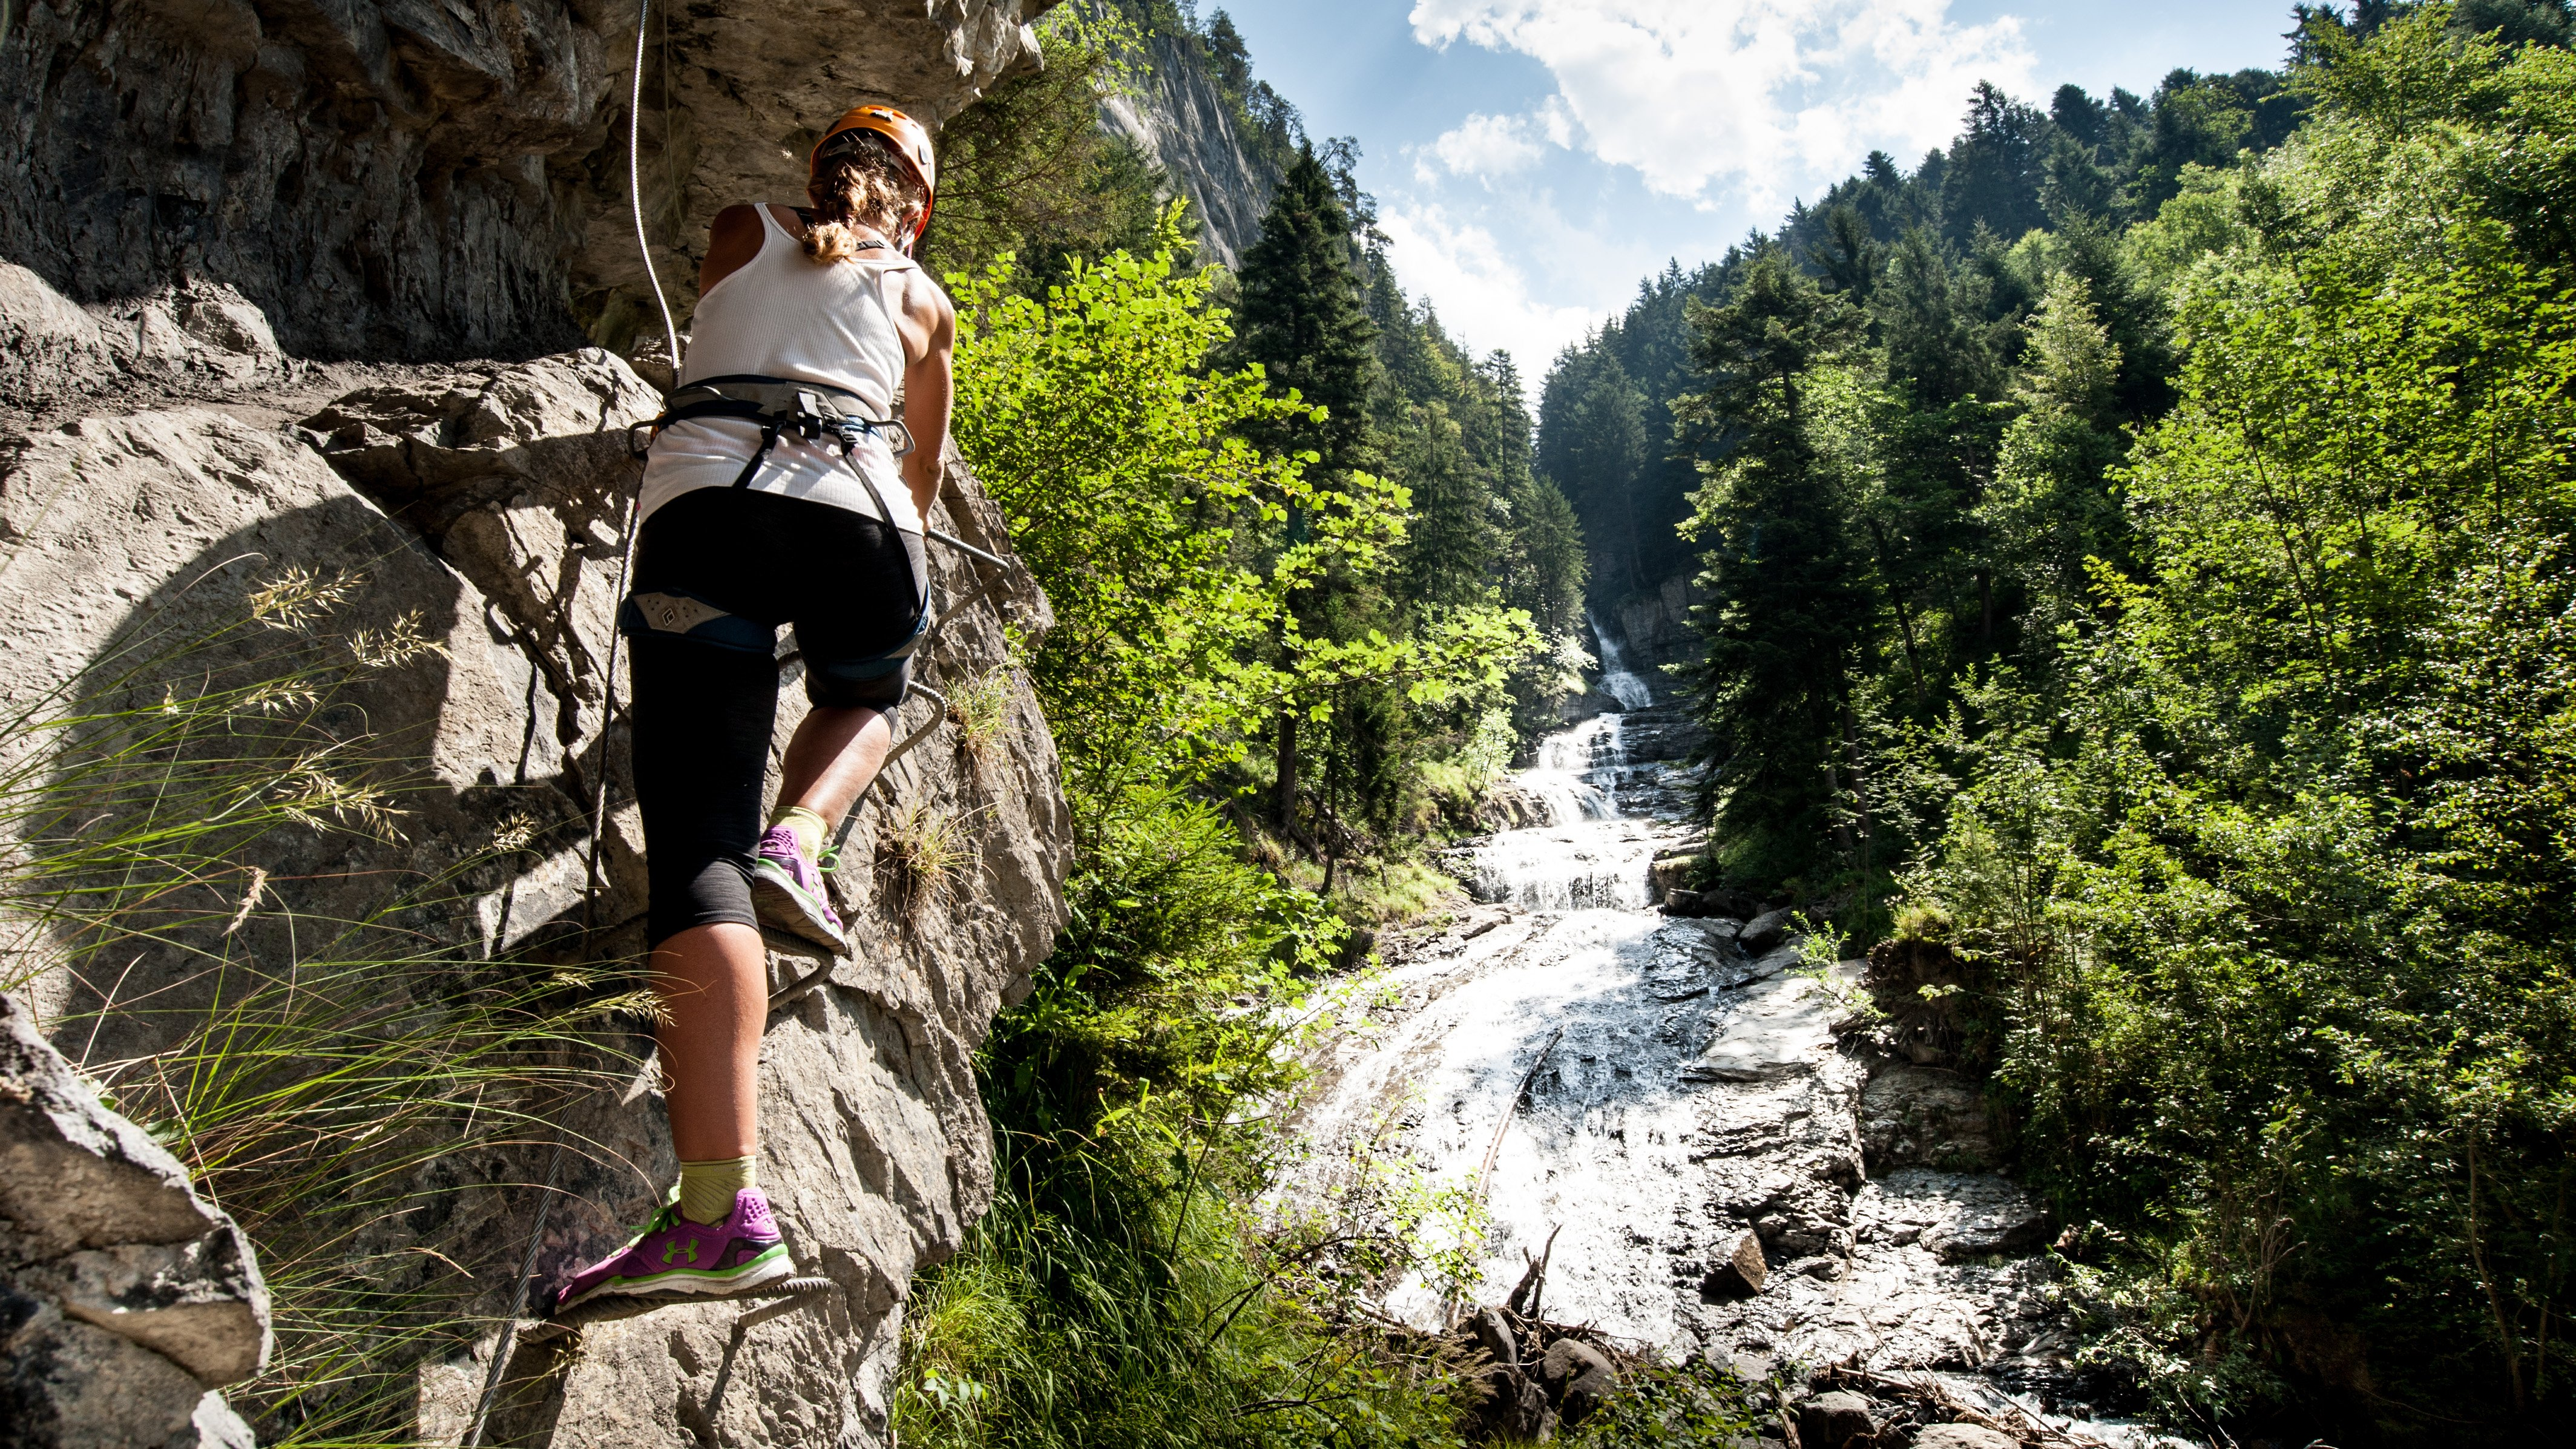 The Via Ferrata of Tière is 450 m long and passes a height difference of 125 m. It crosses over the Tière cascades three times.